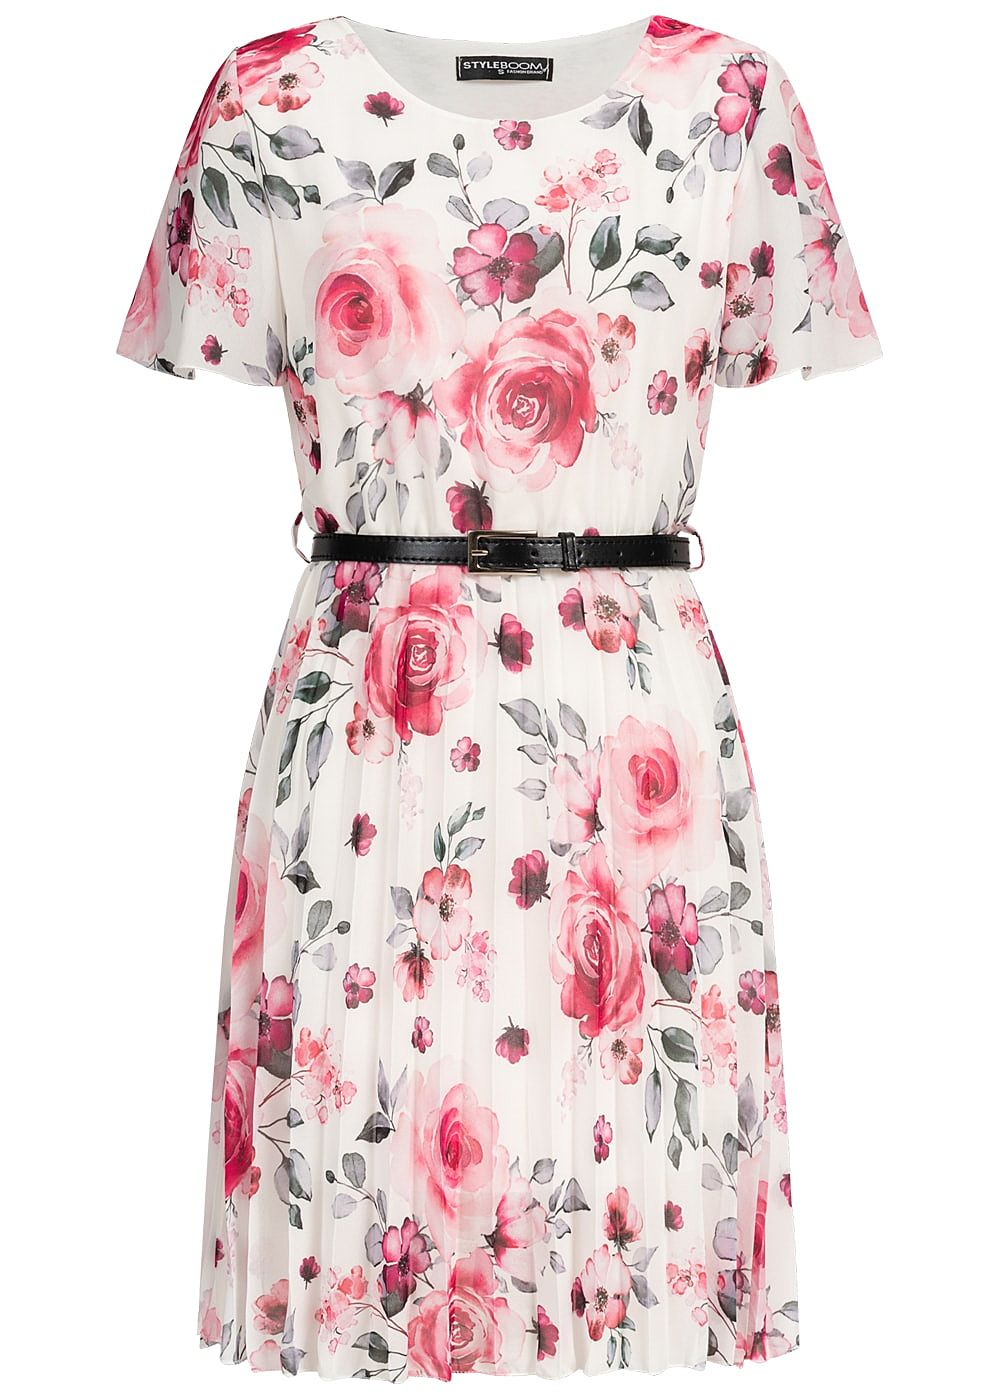 Styleboom Fashion Damen Pleated Chiffon Dress Flower Print Belt weiss rosa - Art.-Nr.: 19056416